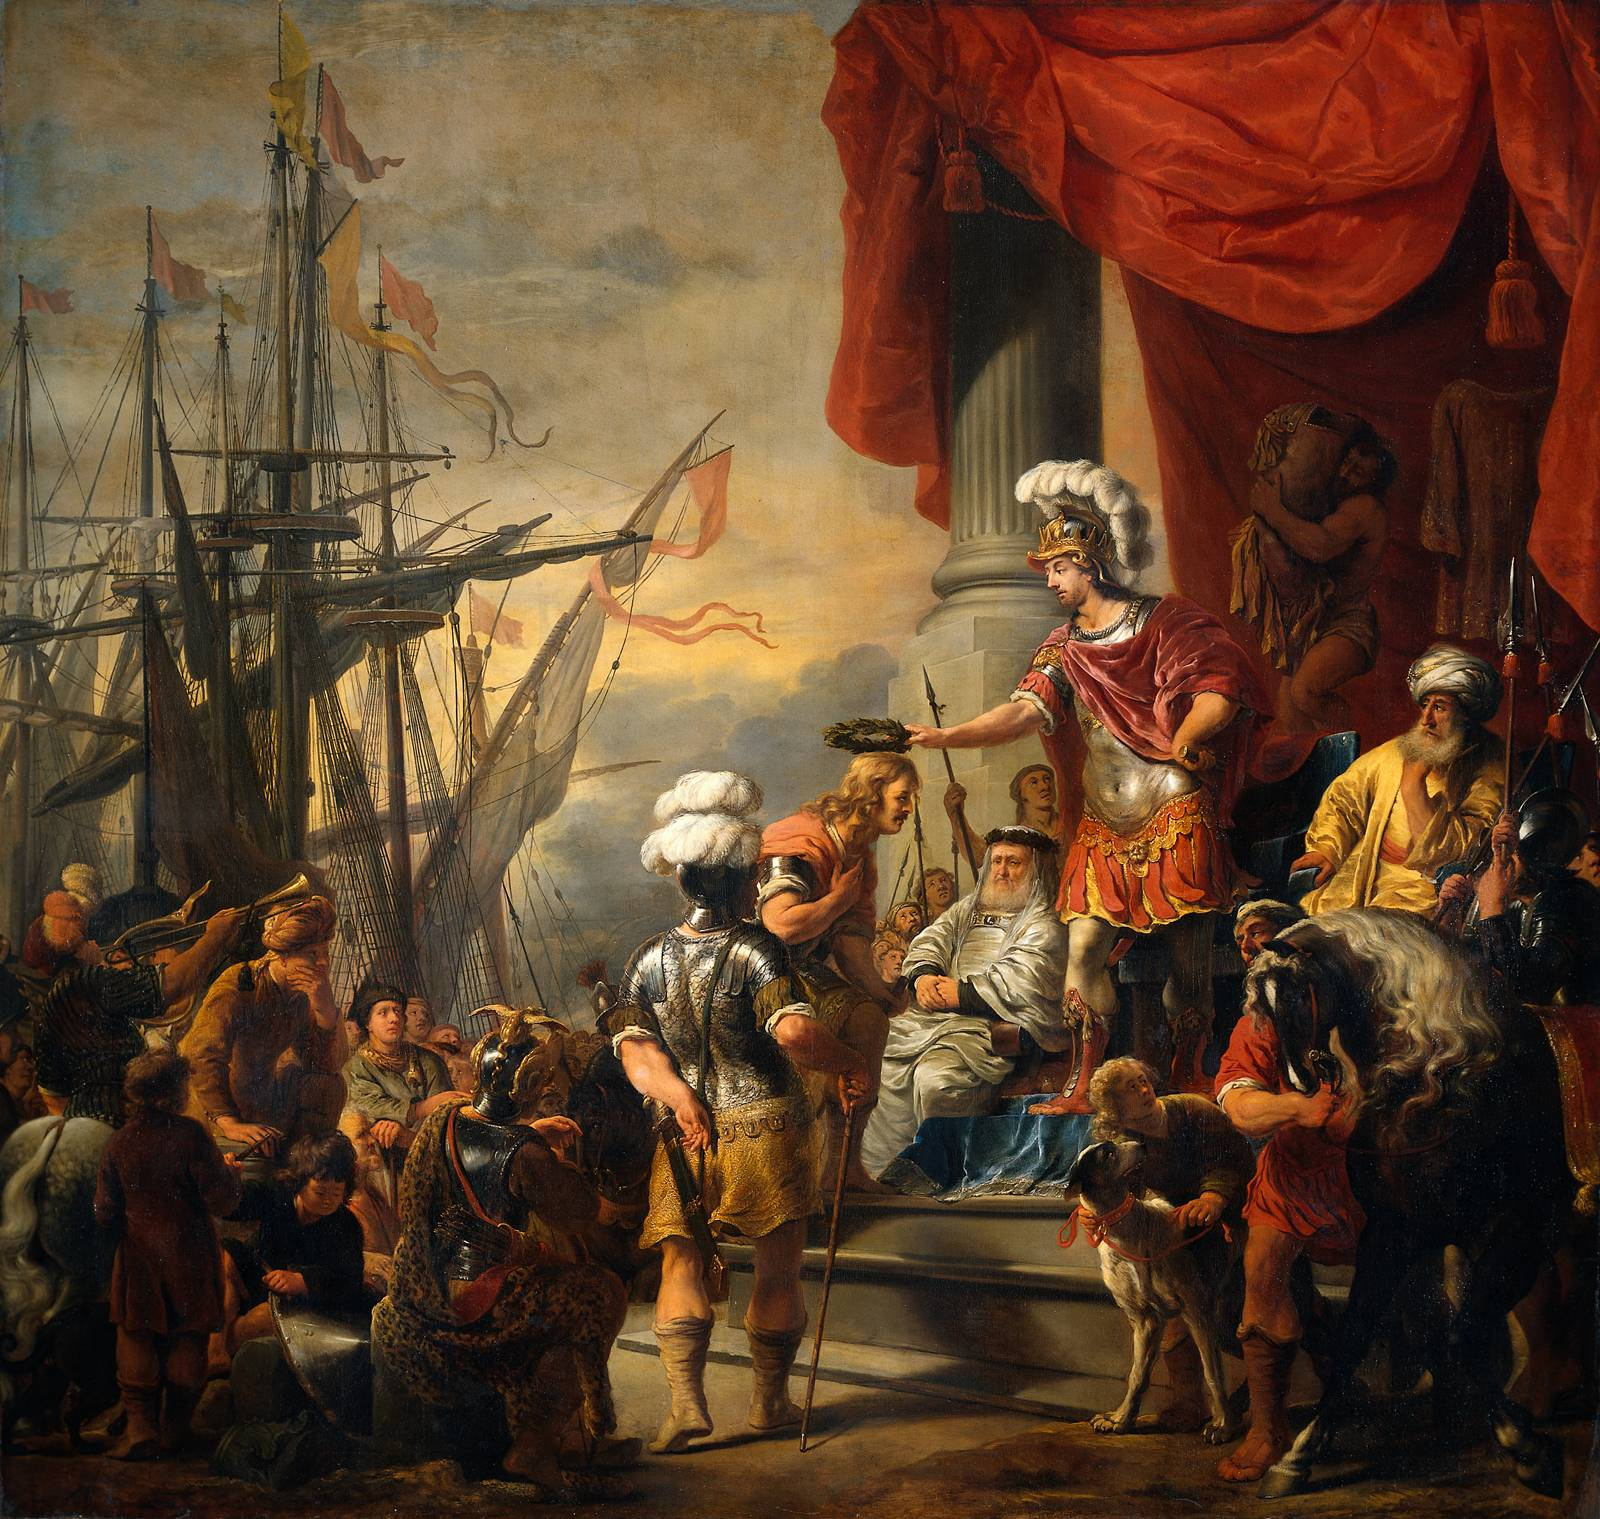 https://upload.wikimedia.org/wikipedia/commons/a/a1/Bol-aeneas.jpg